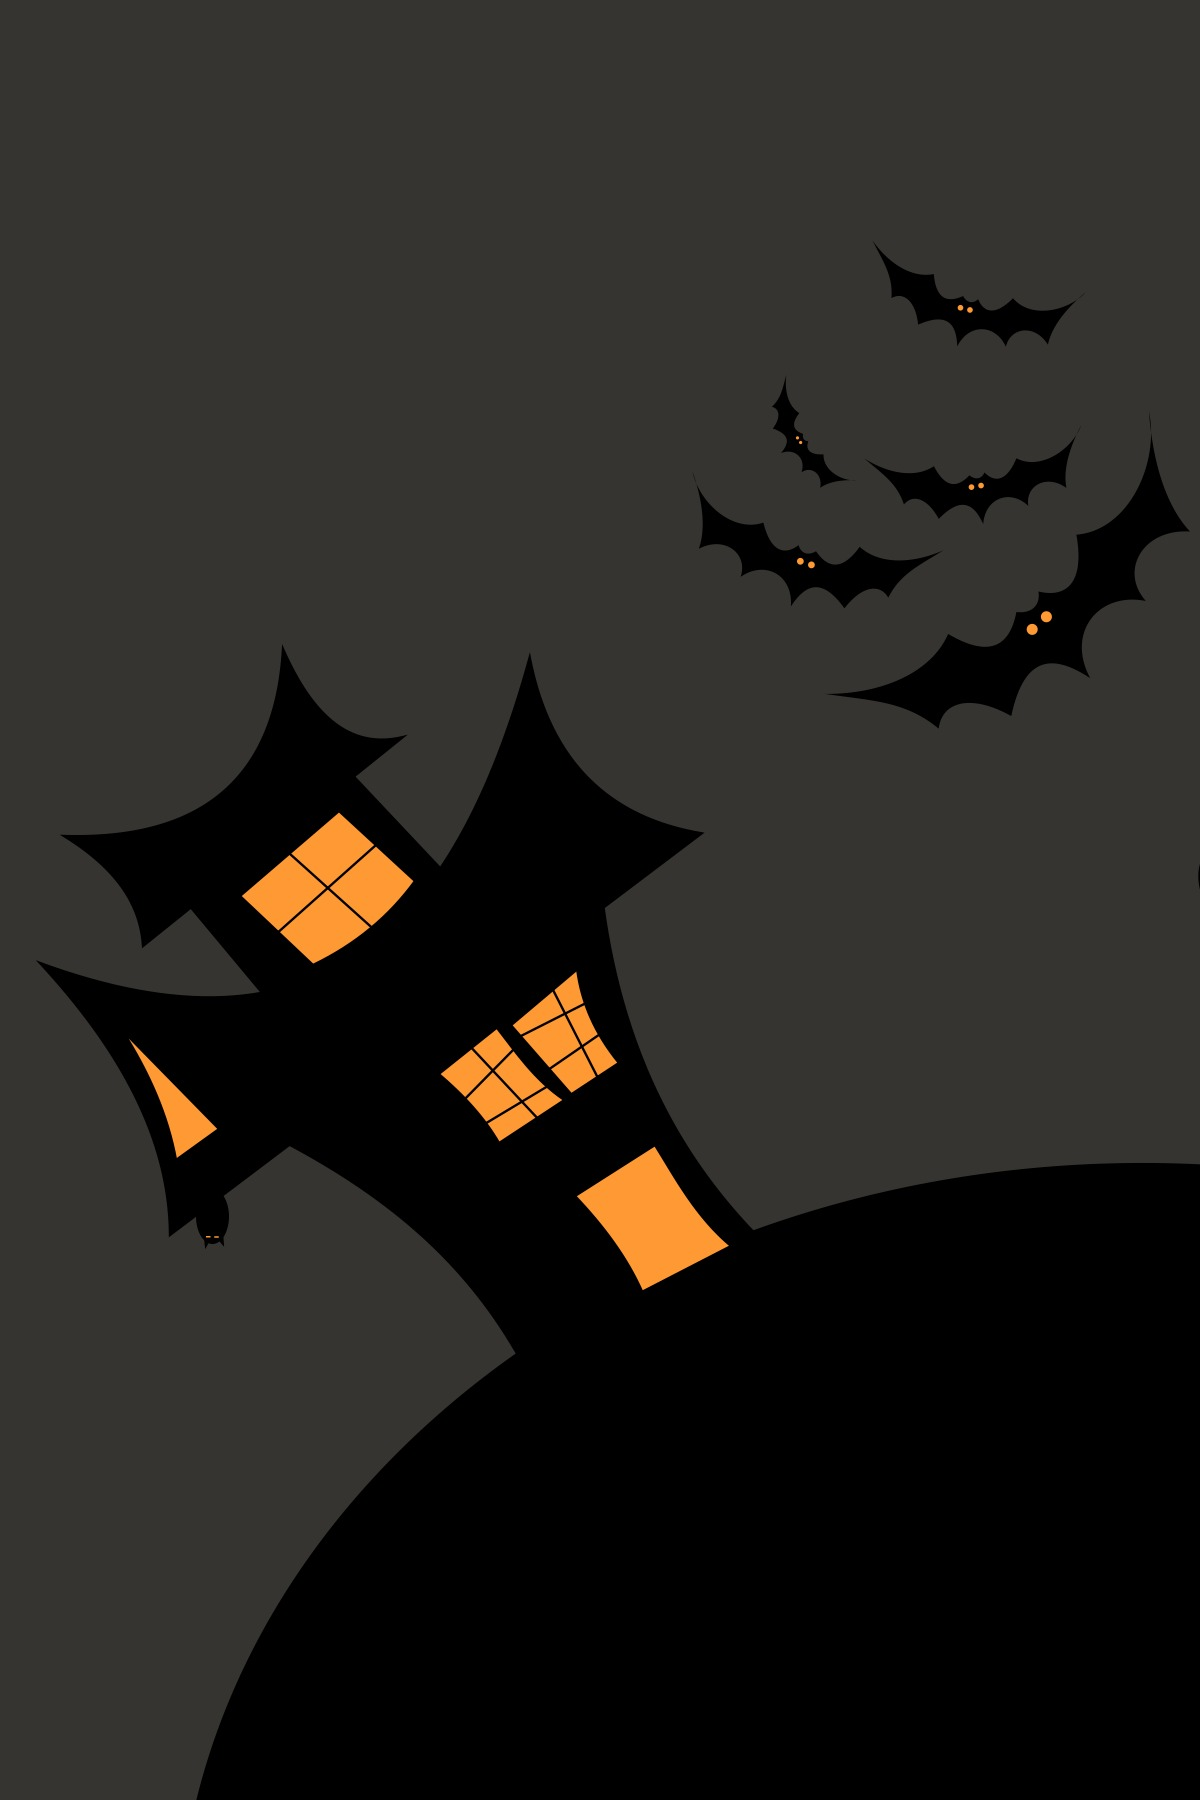 halloween silhouette moon house bat scary lantern